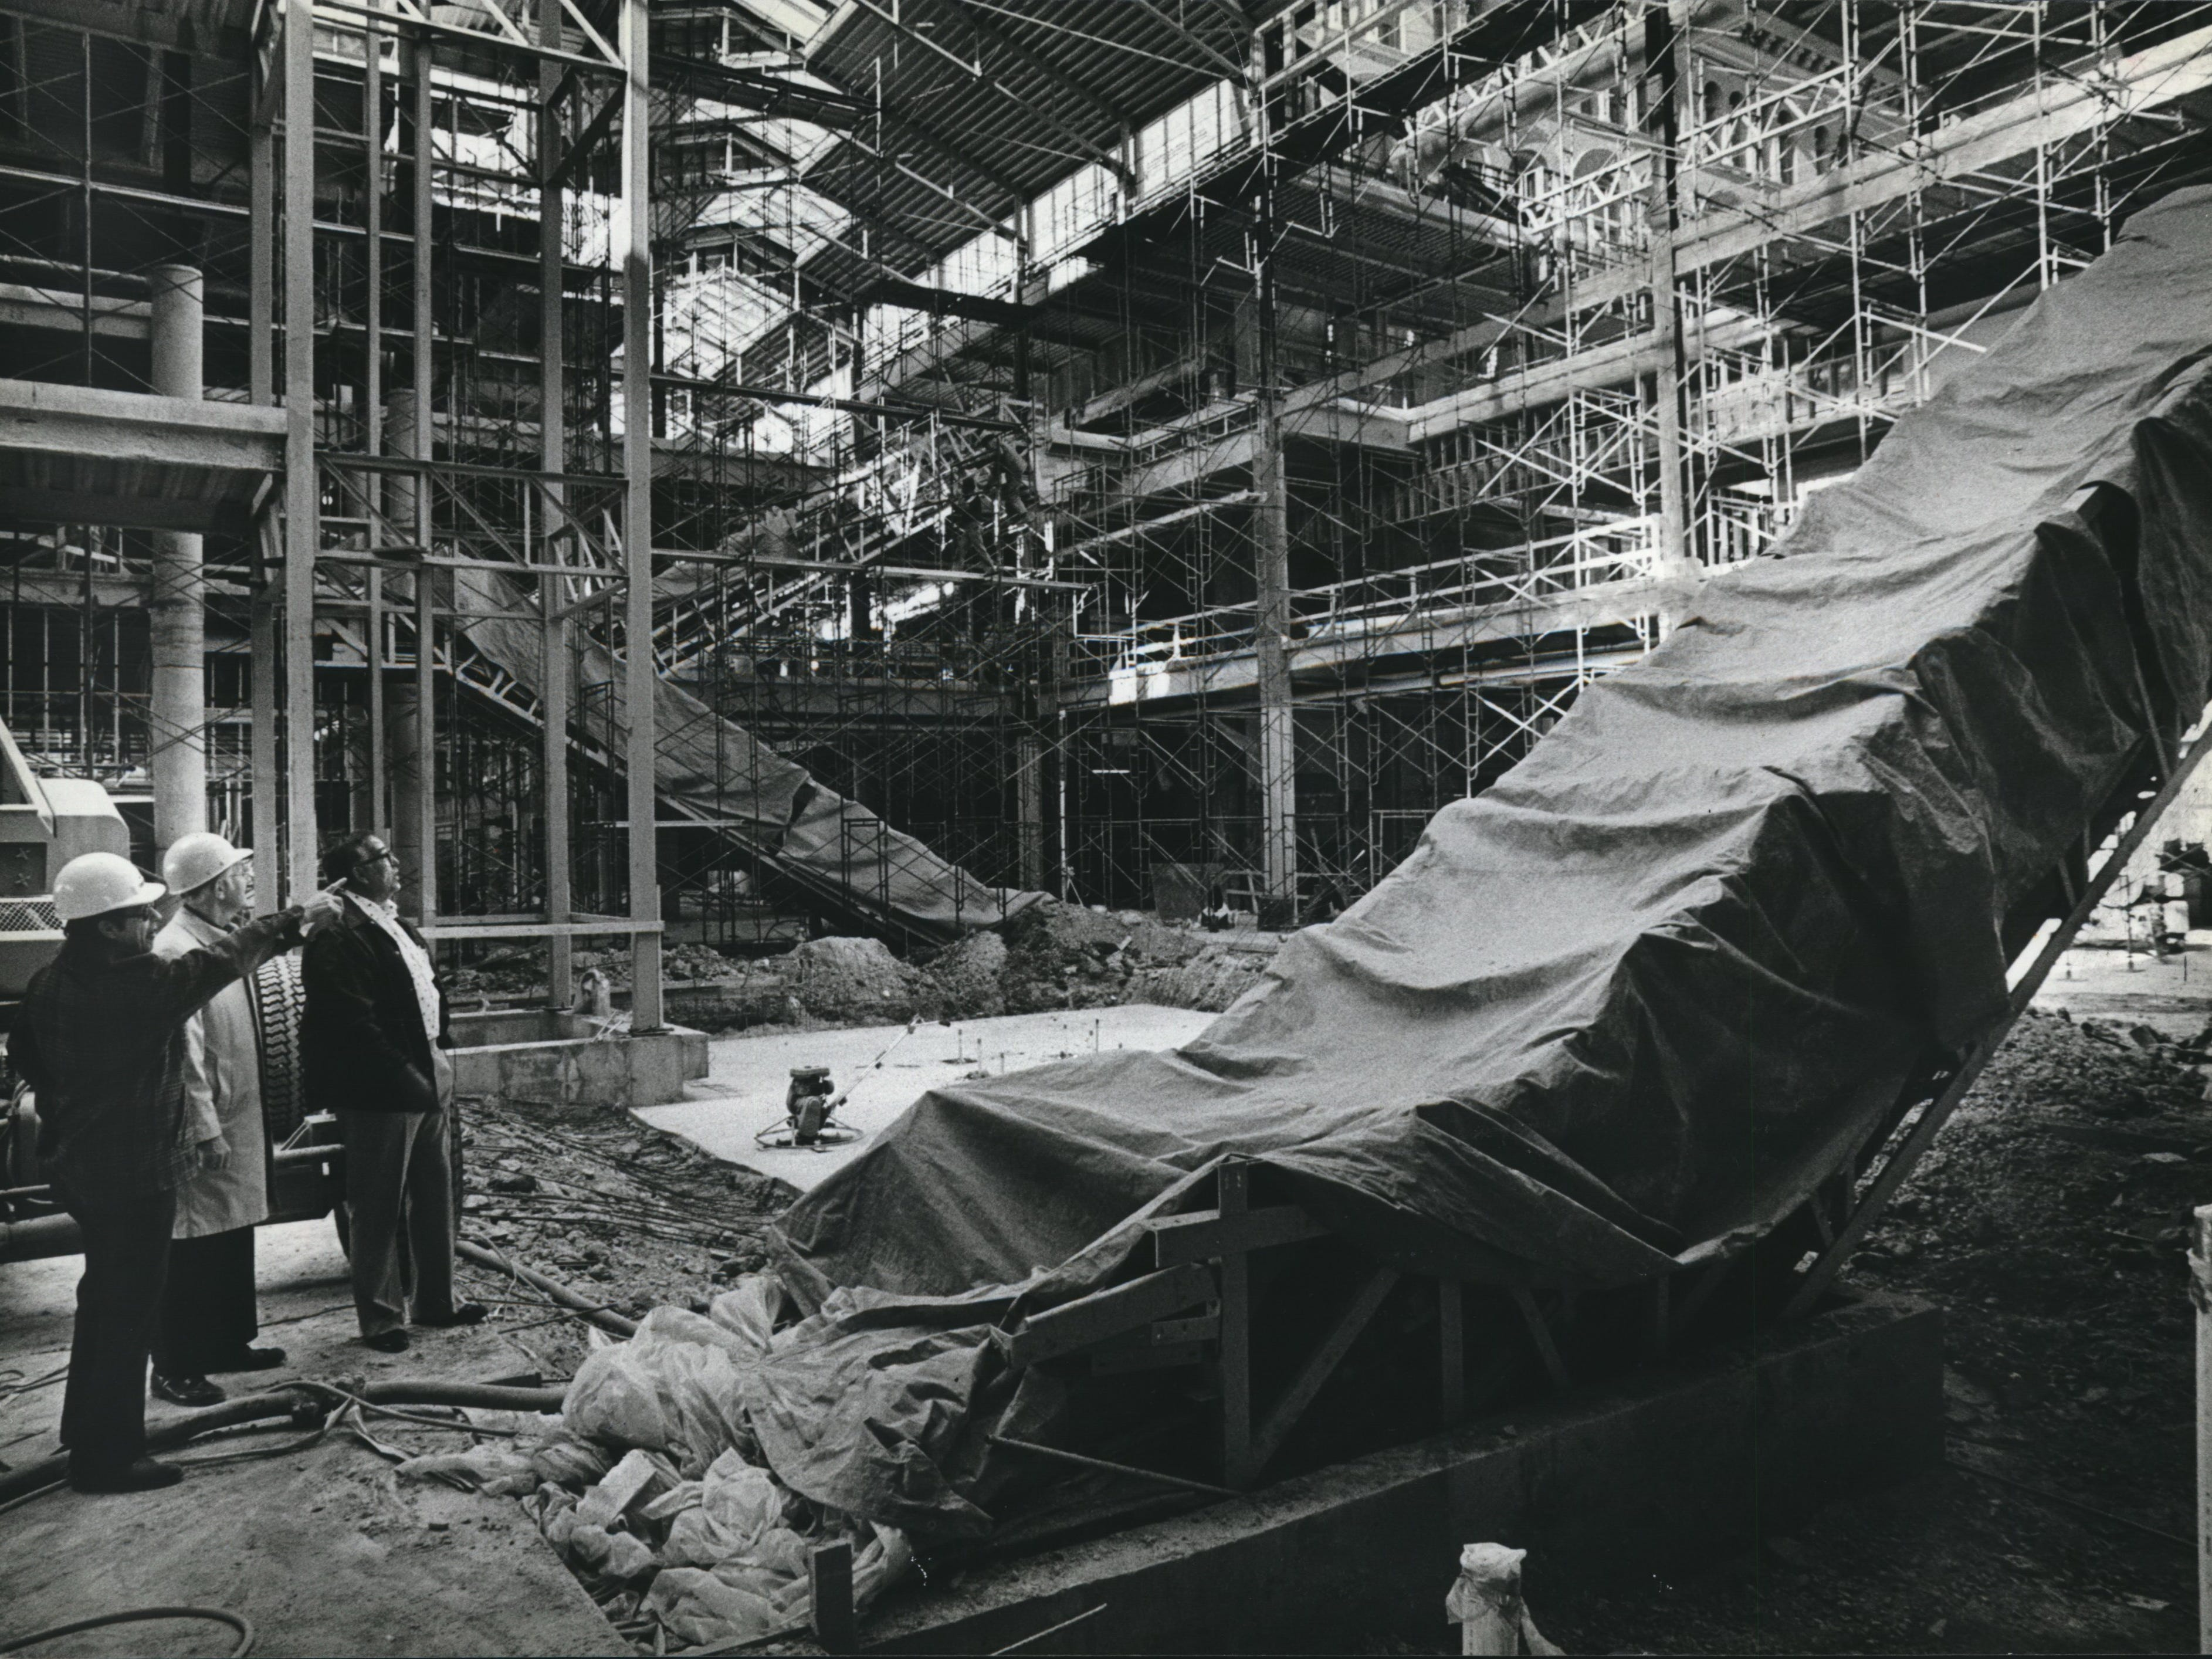 The Grand Avenue Mall Viewing progress in the atrium of the three-story central court were (from left) John Shalek, electrical inspector; Wally Koepp, an electrical engineer with Staff Electric Co., and Emil Rukavina, elevator inspector. The Milwaukee city inspectors and Koepp stood near an escalator (foreground) that will take shoppers to the second level in an area that used to be 3rd St.The new shopping mall is scheduled to open late in July, 1982. Milwaukee- Downtown- Redevelopment Program.